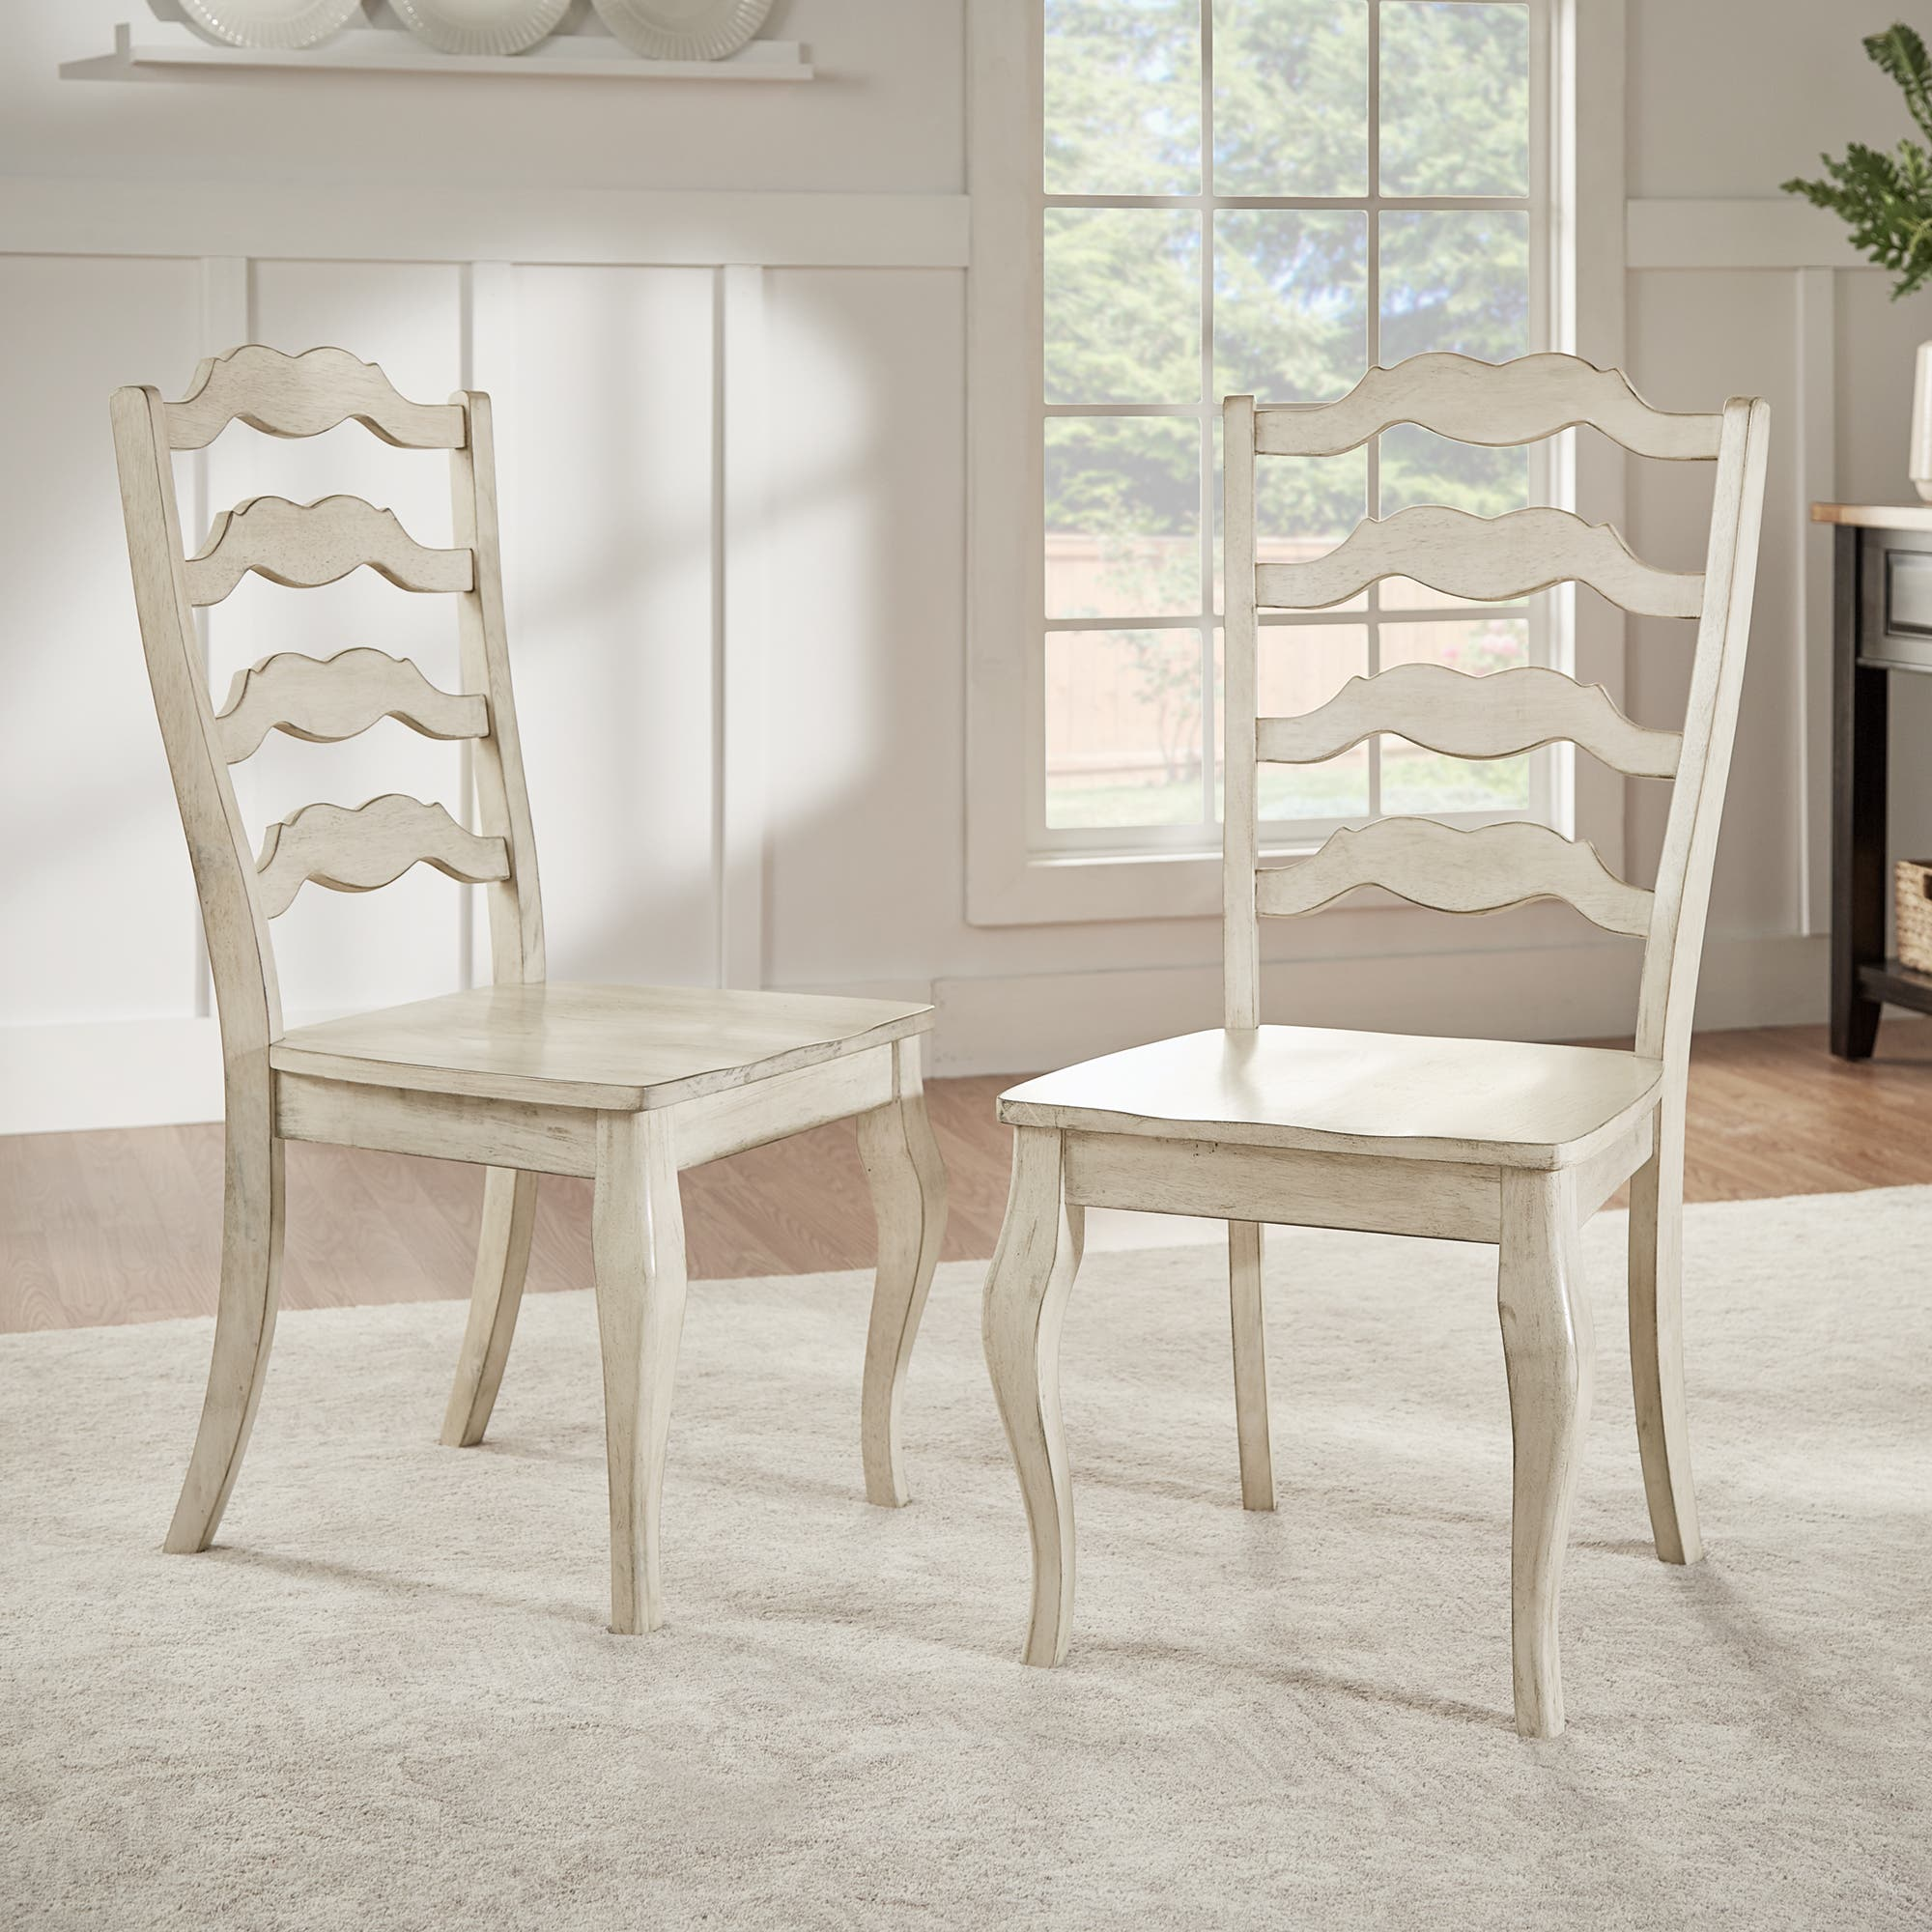 Dining room kitchen chairs for less for Inspire q dining room chairs